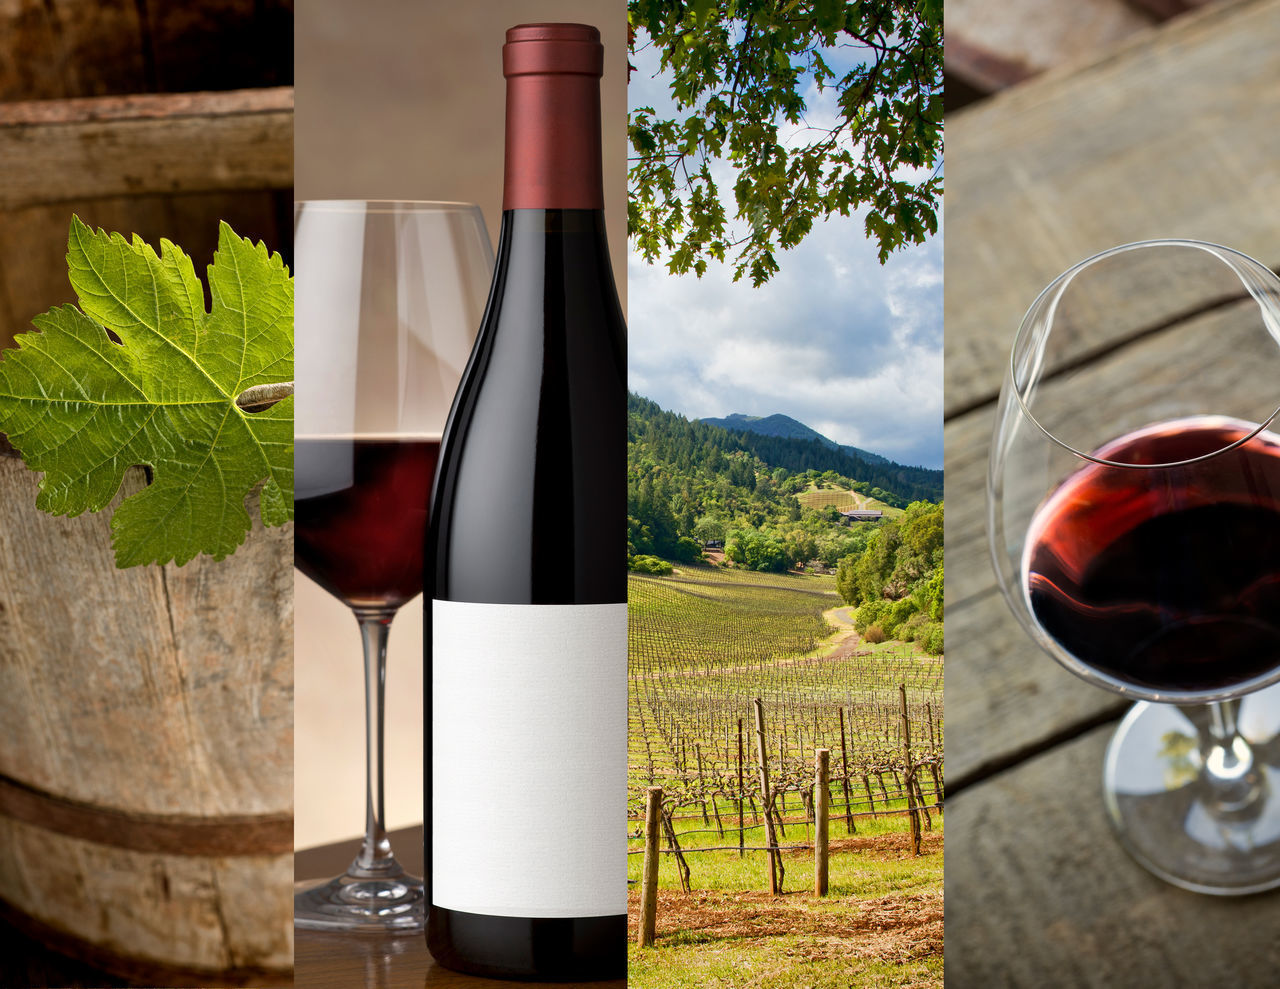 wine, drink, wineglass, alcohol, refreshment, red wine, food and drink, drinking glass, alcoholic drink, wine bottle, no people, tree, bottle, freshness, beverage, table, day, outdoors, close-up, red, healthy eating, food, nature, barrel, wine cask, sky, winetasting